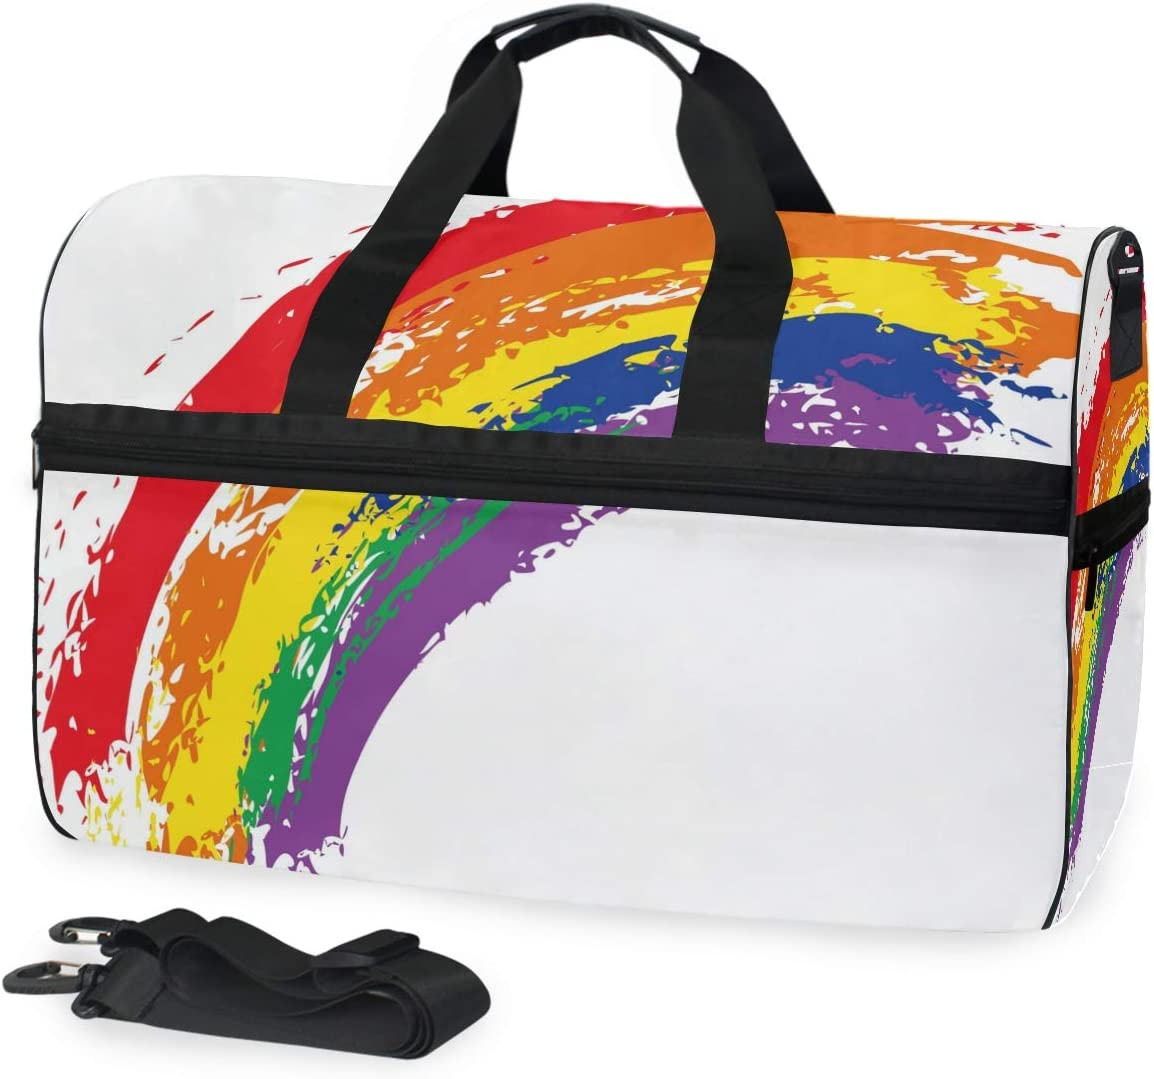 FANTAZIO Painted Rainbow Sports Bag Packable Travel Duffle Bag Lightweight Water Resistant Tear Resistant